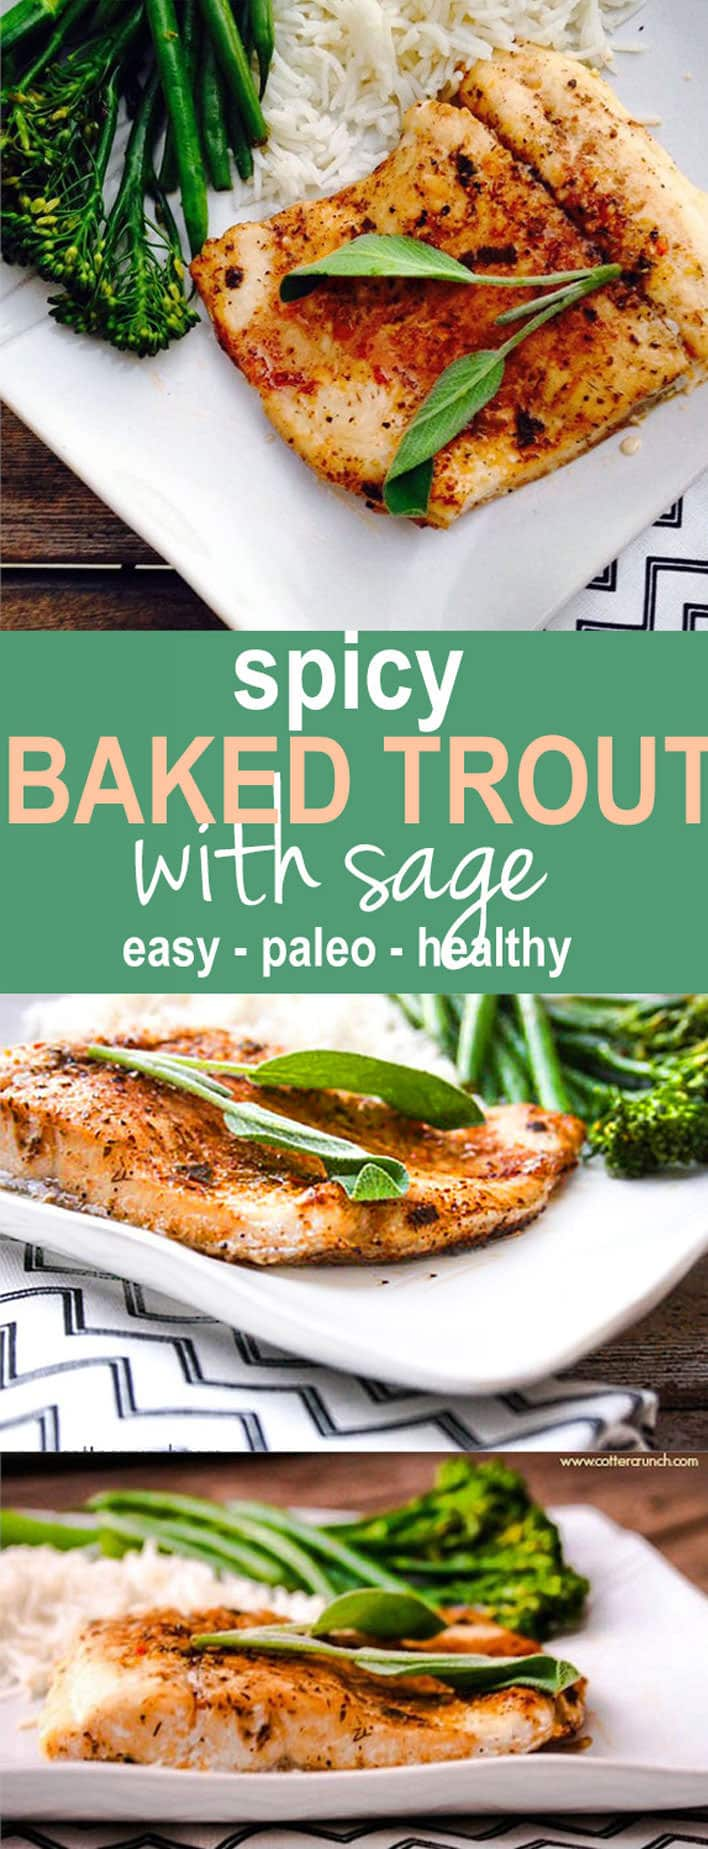 Spicy Baked Southwest Trout with Herbs! This baked trout is easy to make, paleo, and great use of herbs (like sage) and other spices! @cottercrunch